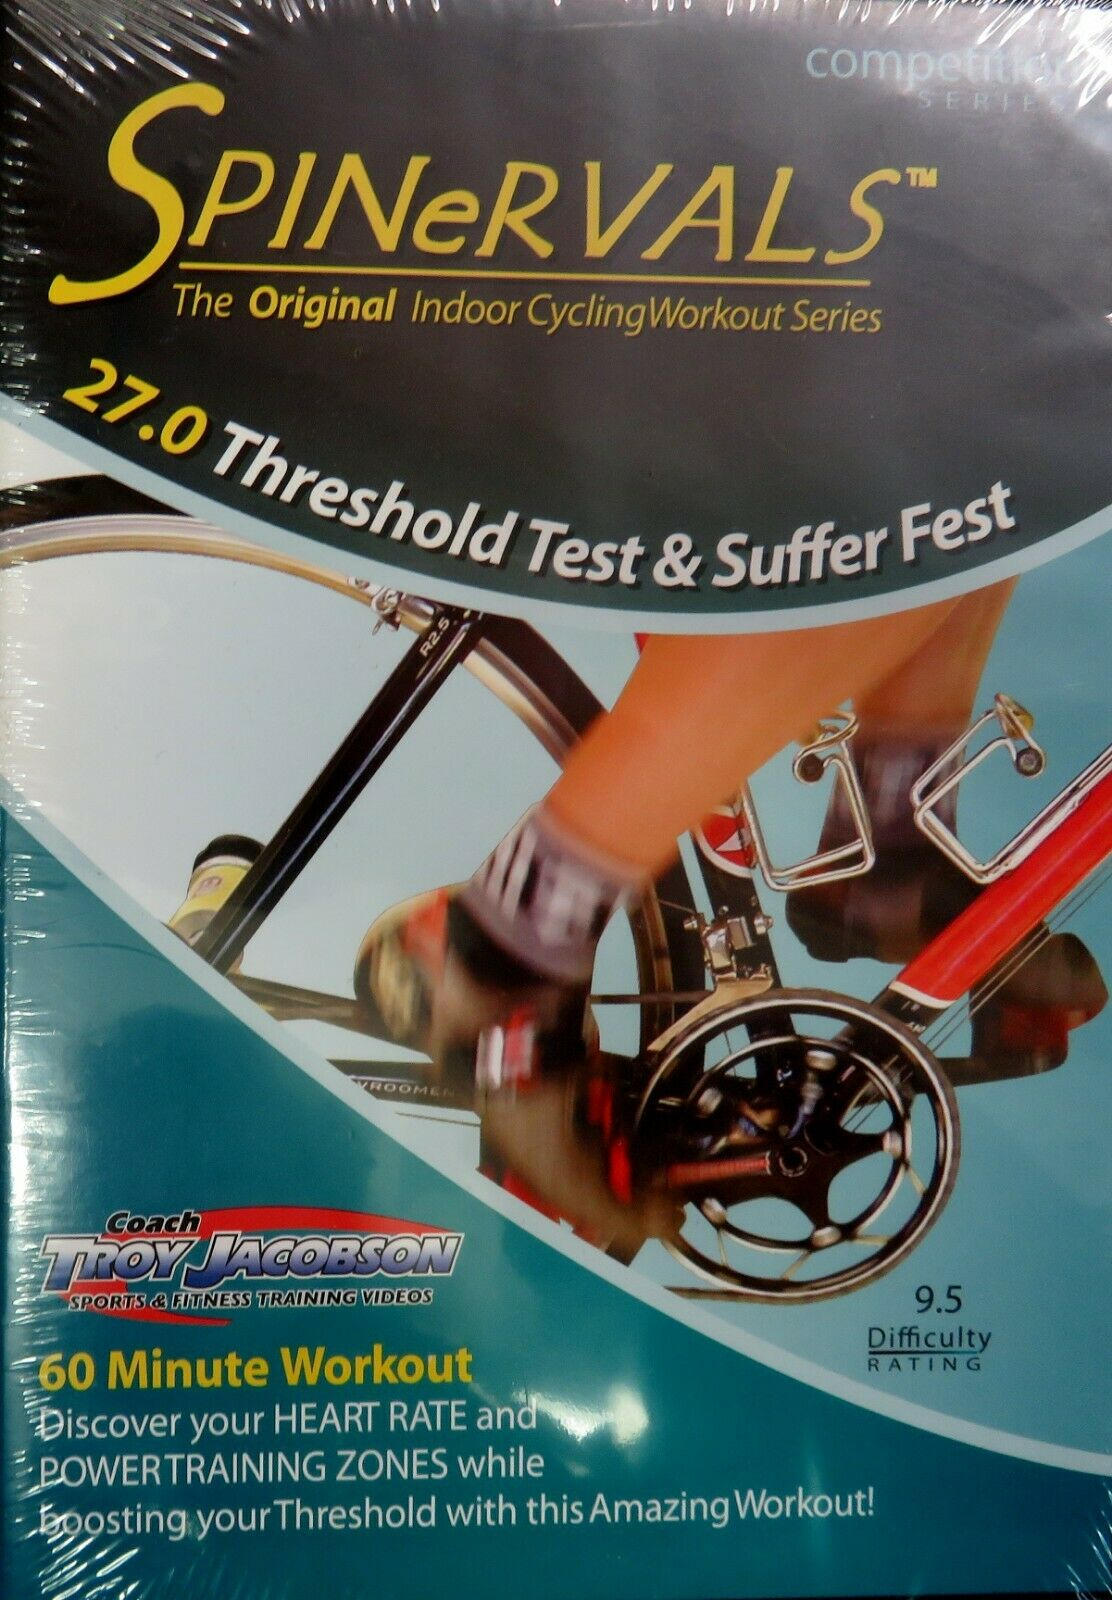 Spinervals Indoor Cycling Workout 27 0 Threshold Test & Suffer Fest DVD 60  Min